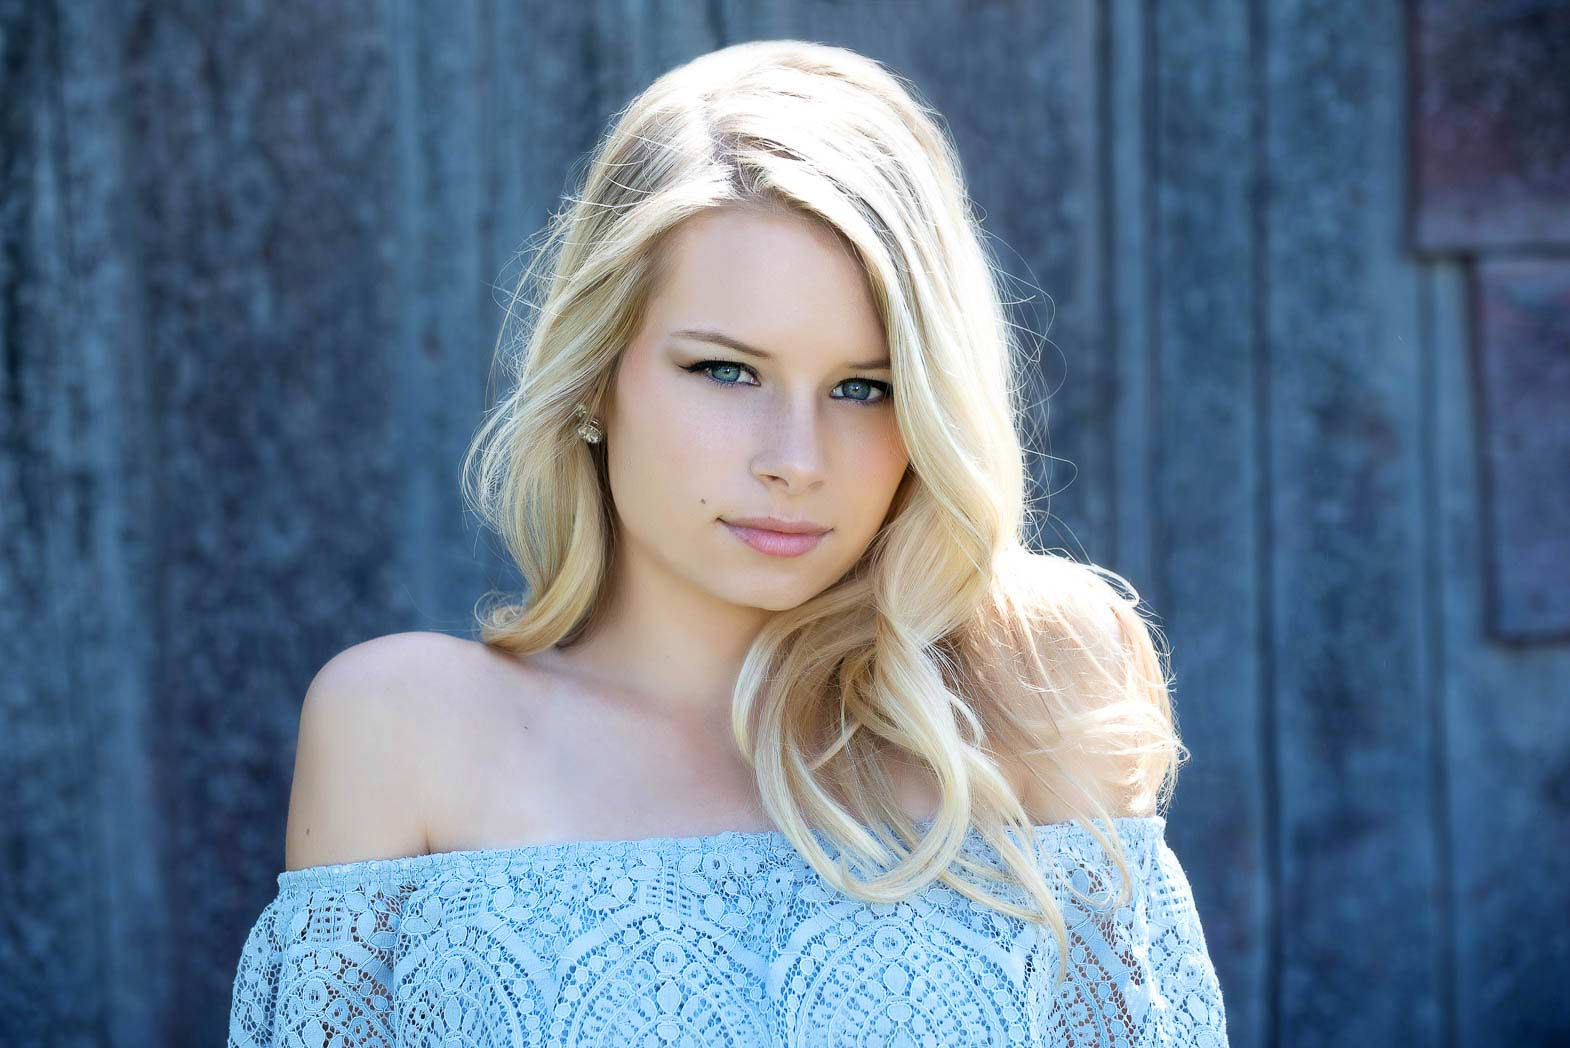 beautiful blond senior model with blue eye and shirt against a blue wall